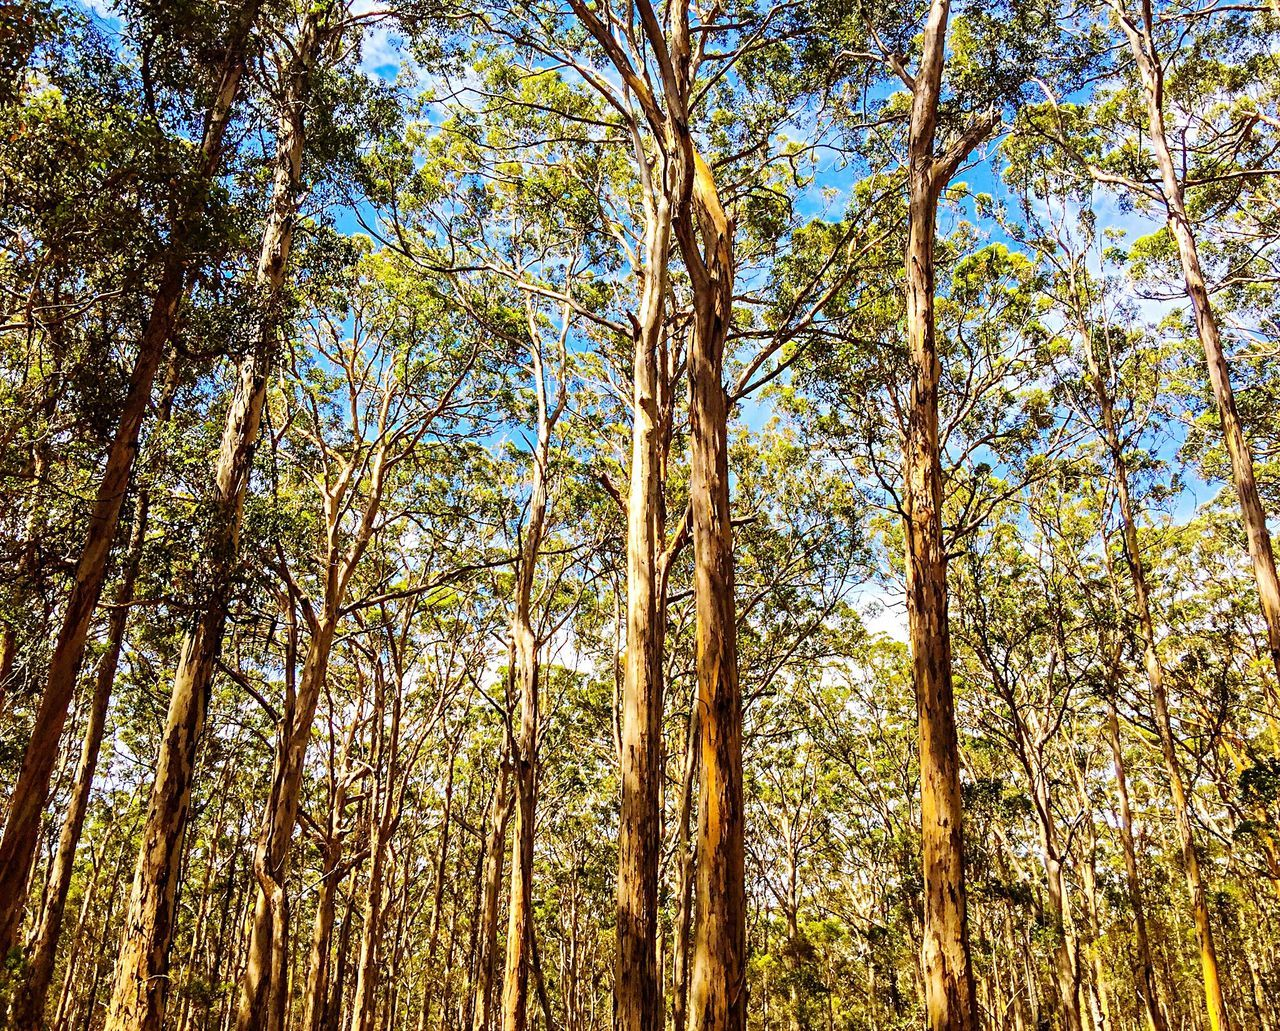 Karri Trees: Boranup Forest, Western Australia Karri Trees Forest Photography Tree And Sky Tree Porn Connecting Connected With Nature Walking Meditation Walking In The Woods Hiking Forest View Nature Photography Nature Woodlands Eco Adventure Woods Margaret River Region Boranup Forest Forest Leeuwin Naturaliste Forest Green Leaves Trees Branches Tall Trees Photographic Memory Fun Memories Of Electric Quad Bike Eco Tour Of Karri Trees In The Boranup Forest In Margaret River Region Of Western Australia